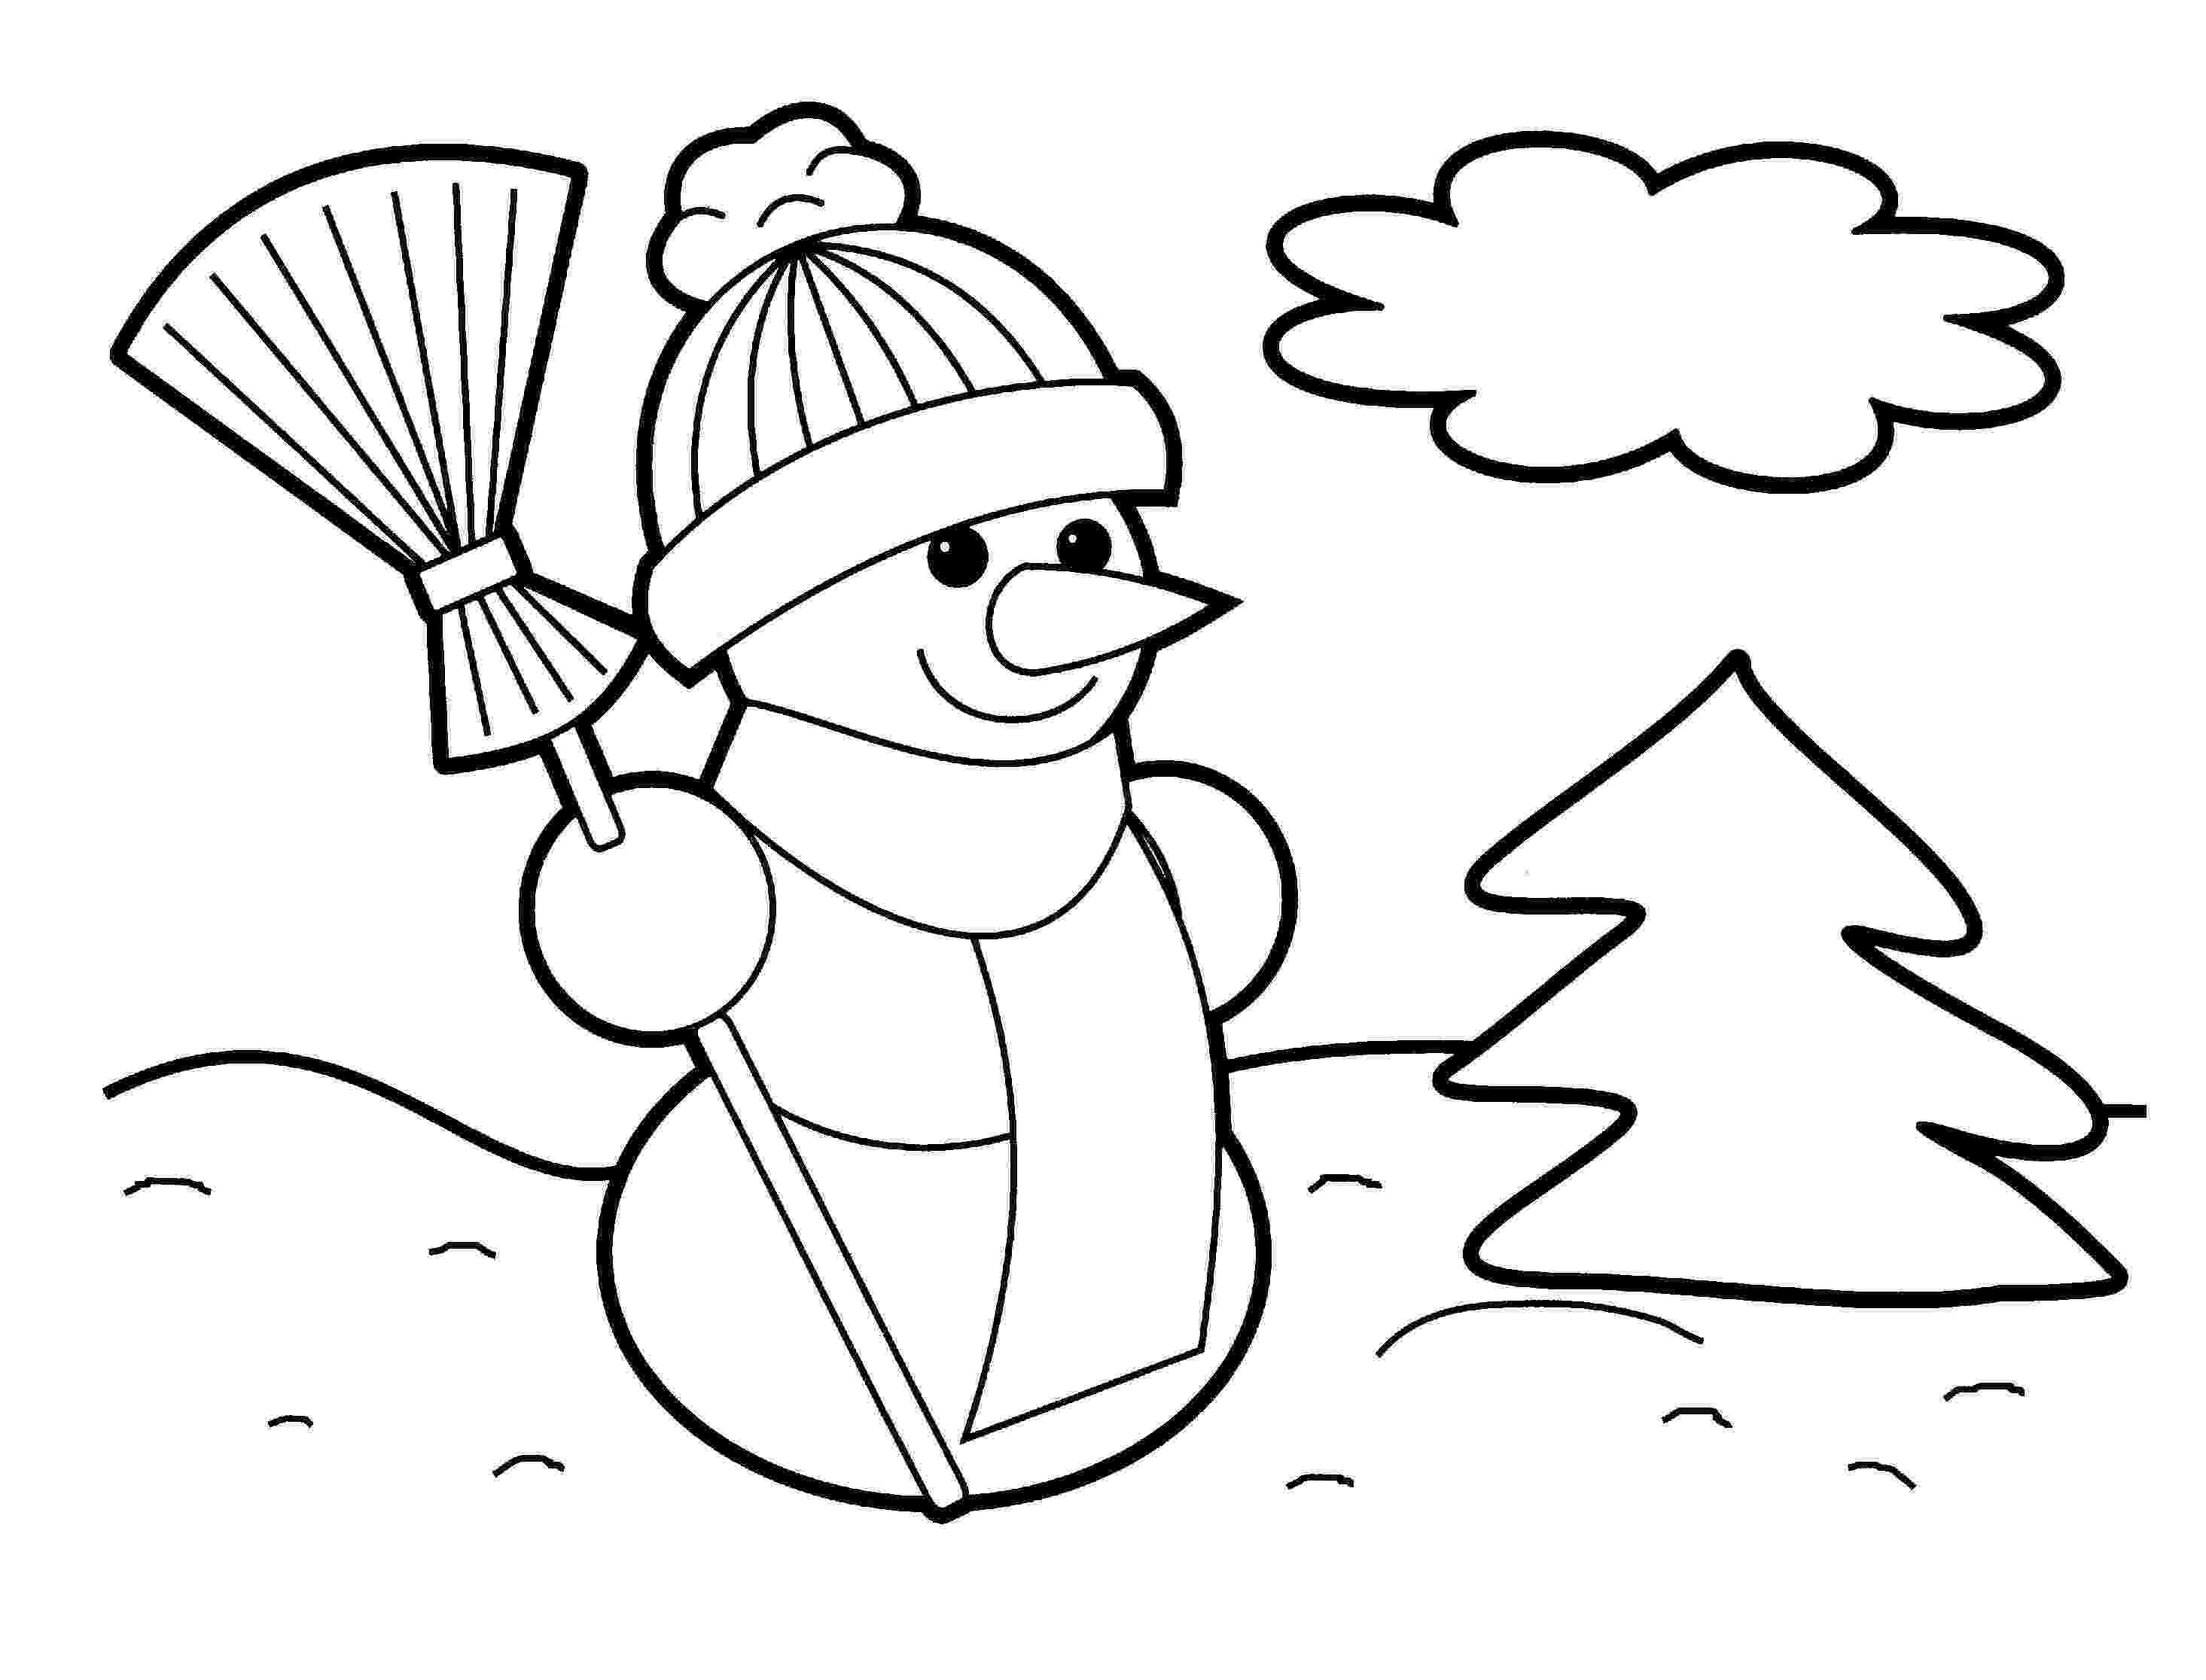 printable christmas coloring pages for kindergarten christmas coloring sheets printables easy pre k christmas pages for printable kindergarten coloring